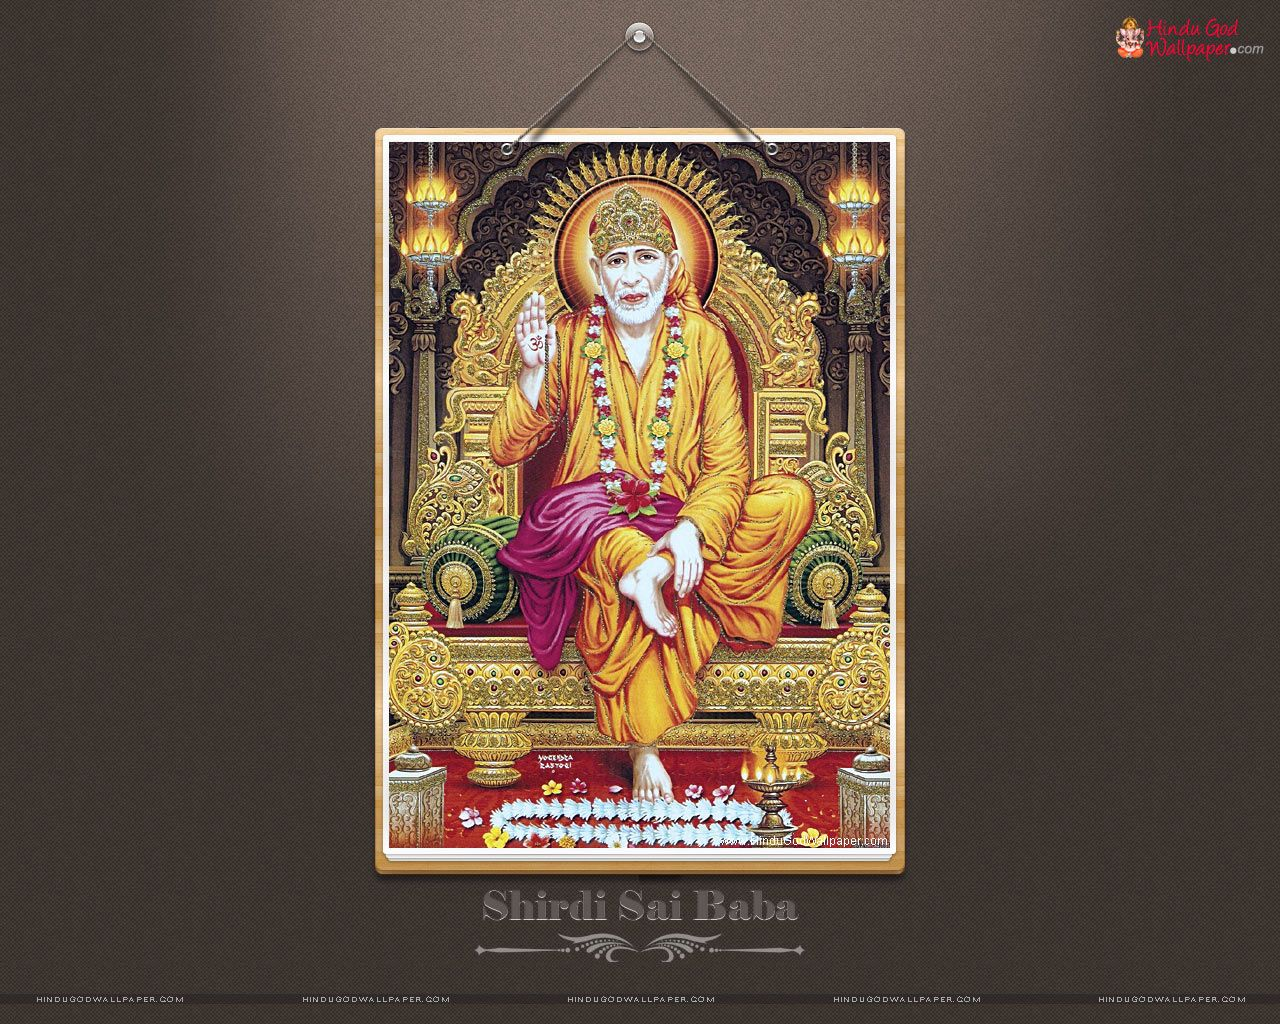 Hd wallpaper sai baba - Shirdi Sai Baba Hd Wallpapers Full Size Download